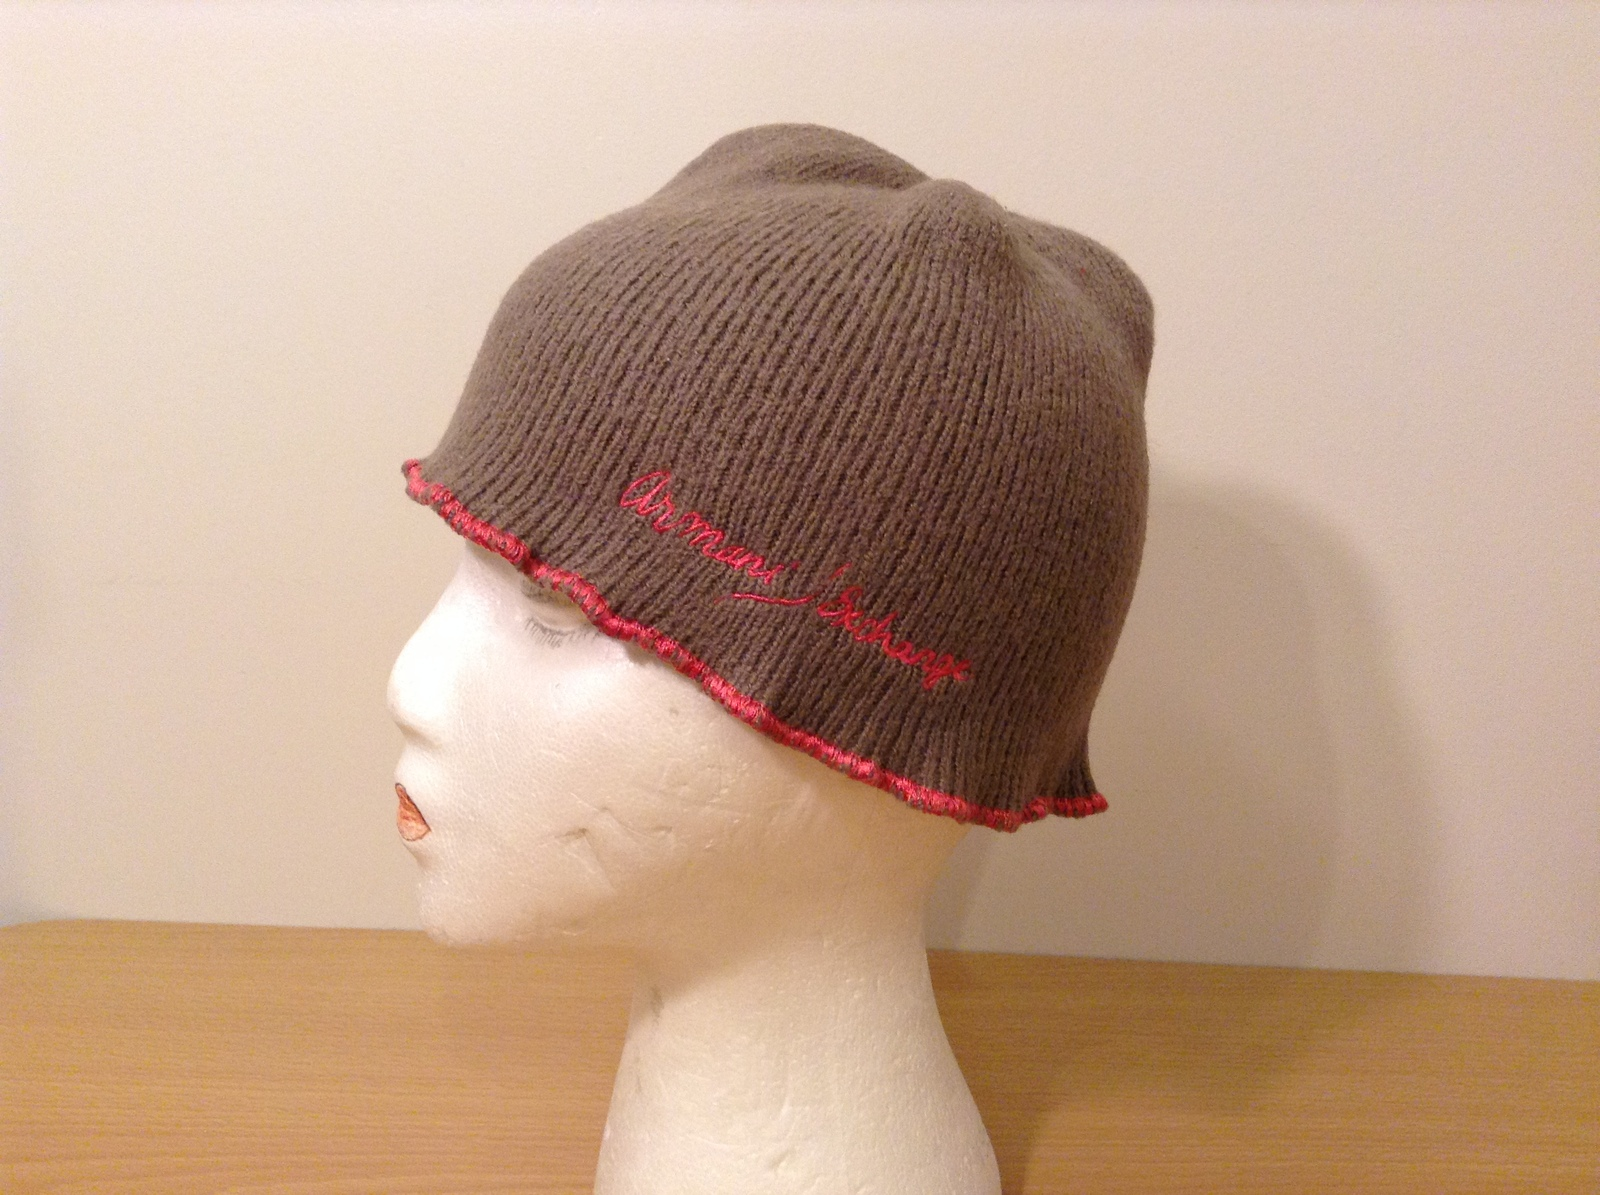 Armani Exchange Brown/Gray Small Hat with Pink Edging and Embroidery 100% Wool